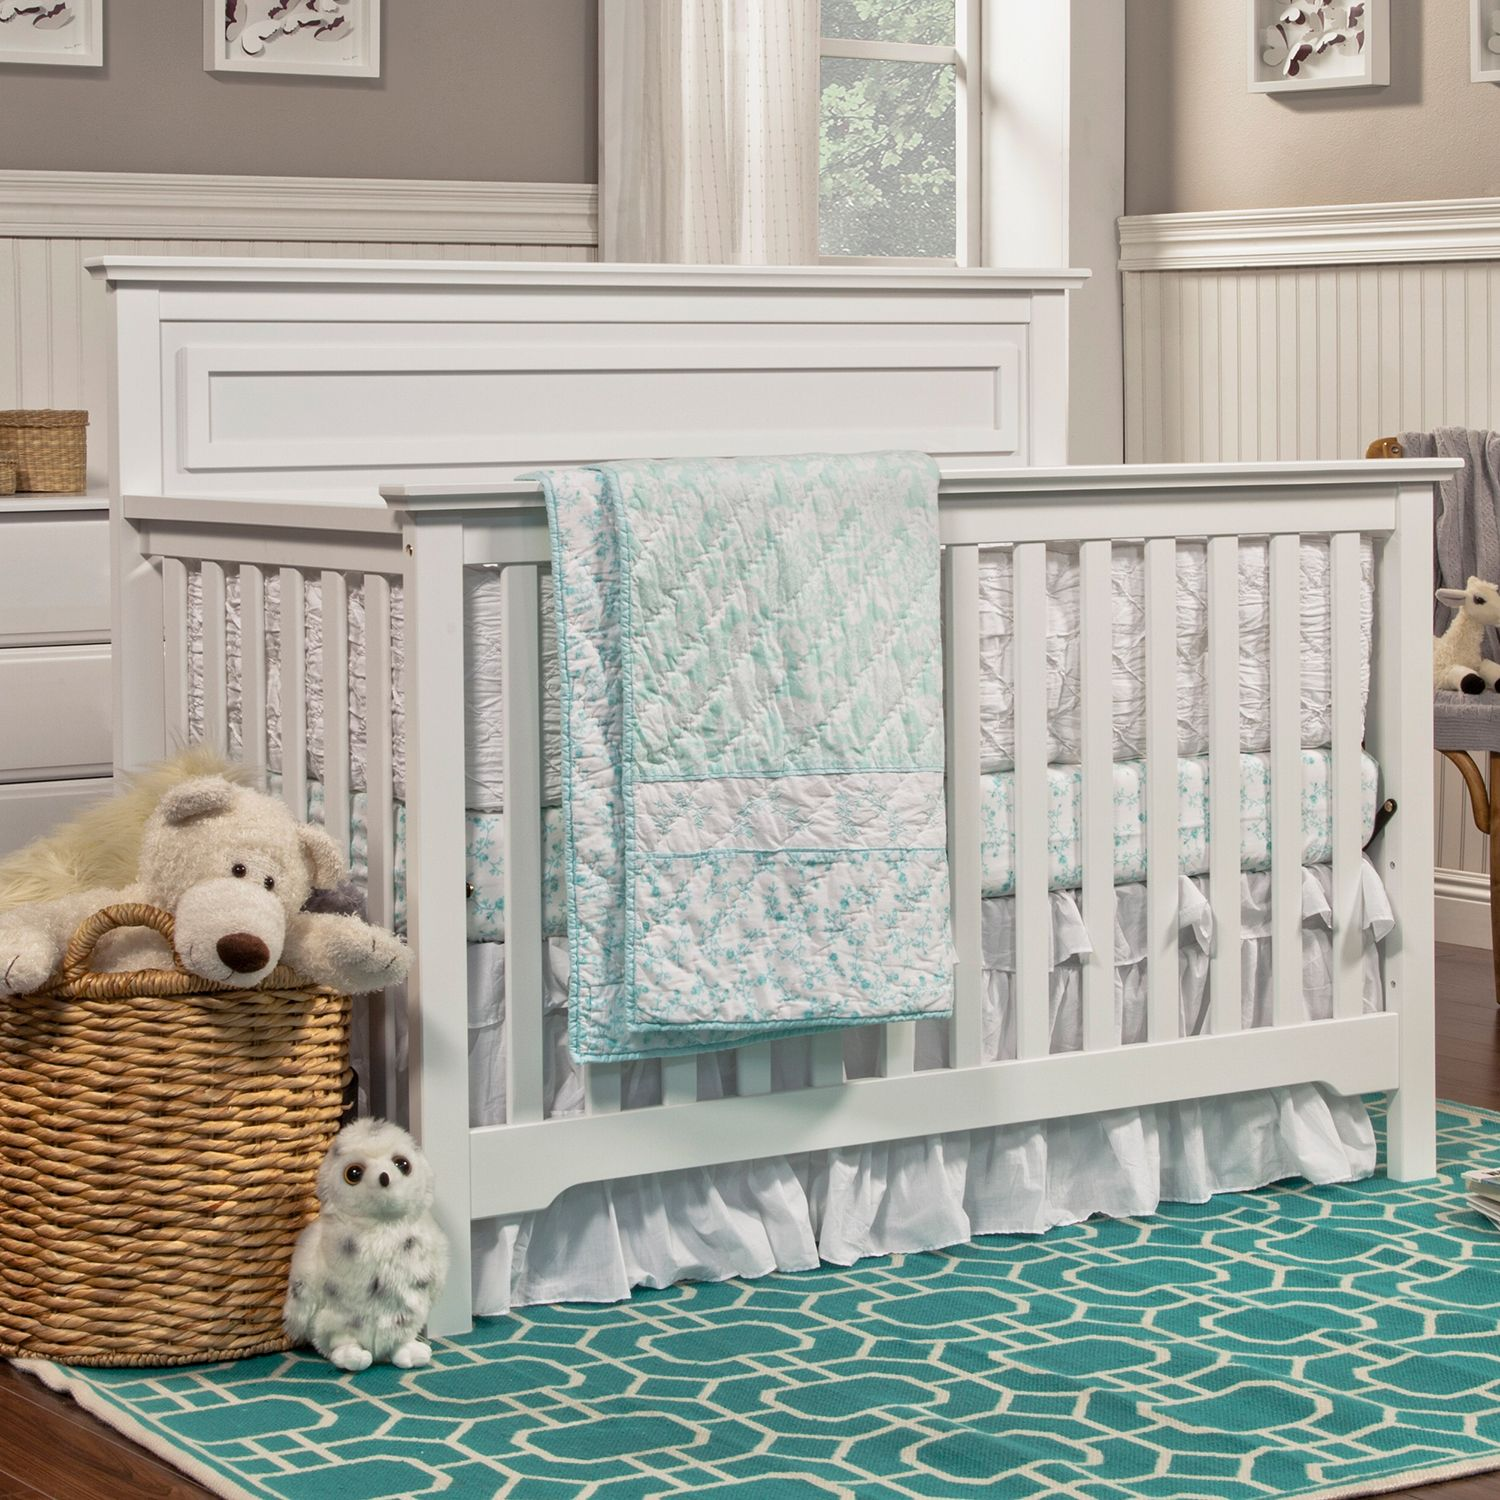 davinci autumn 4in1 convertible crib